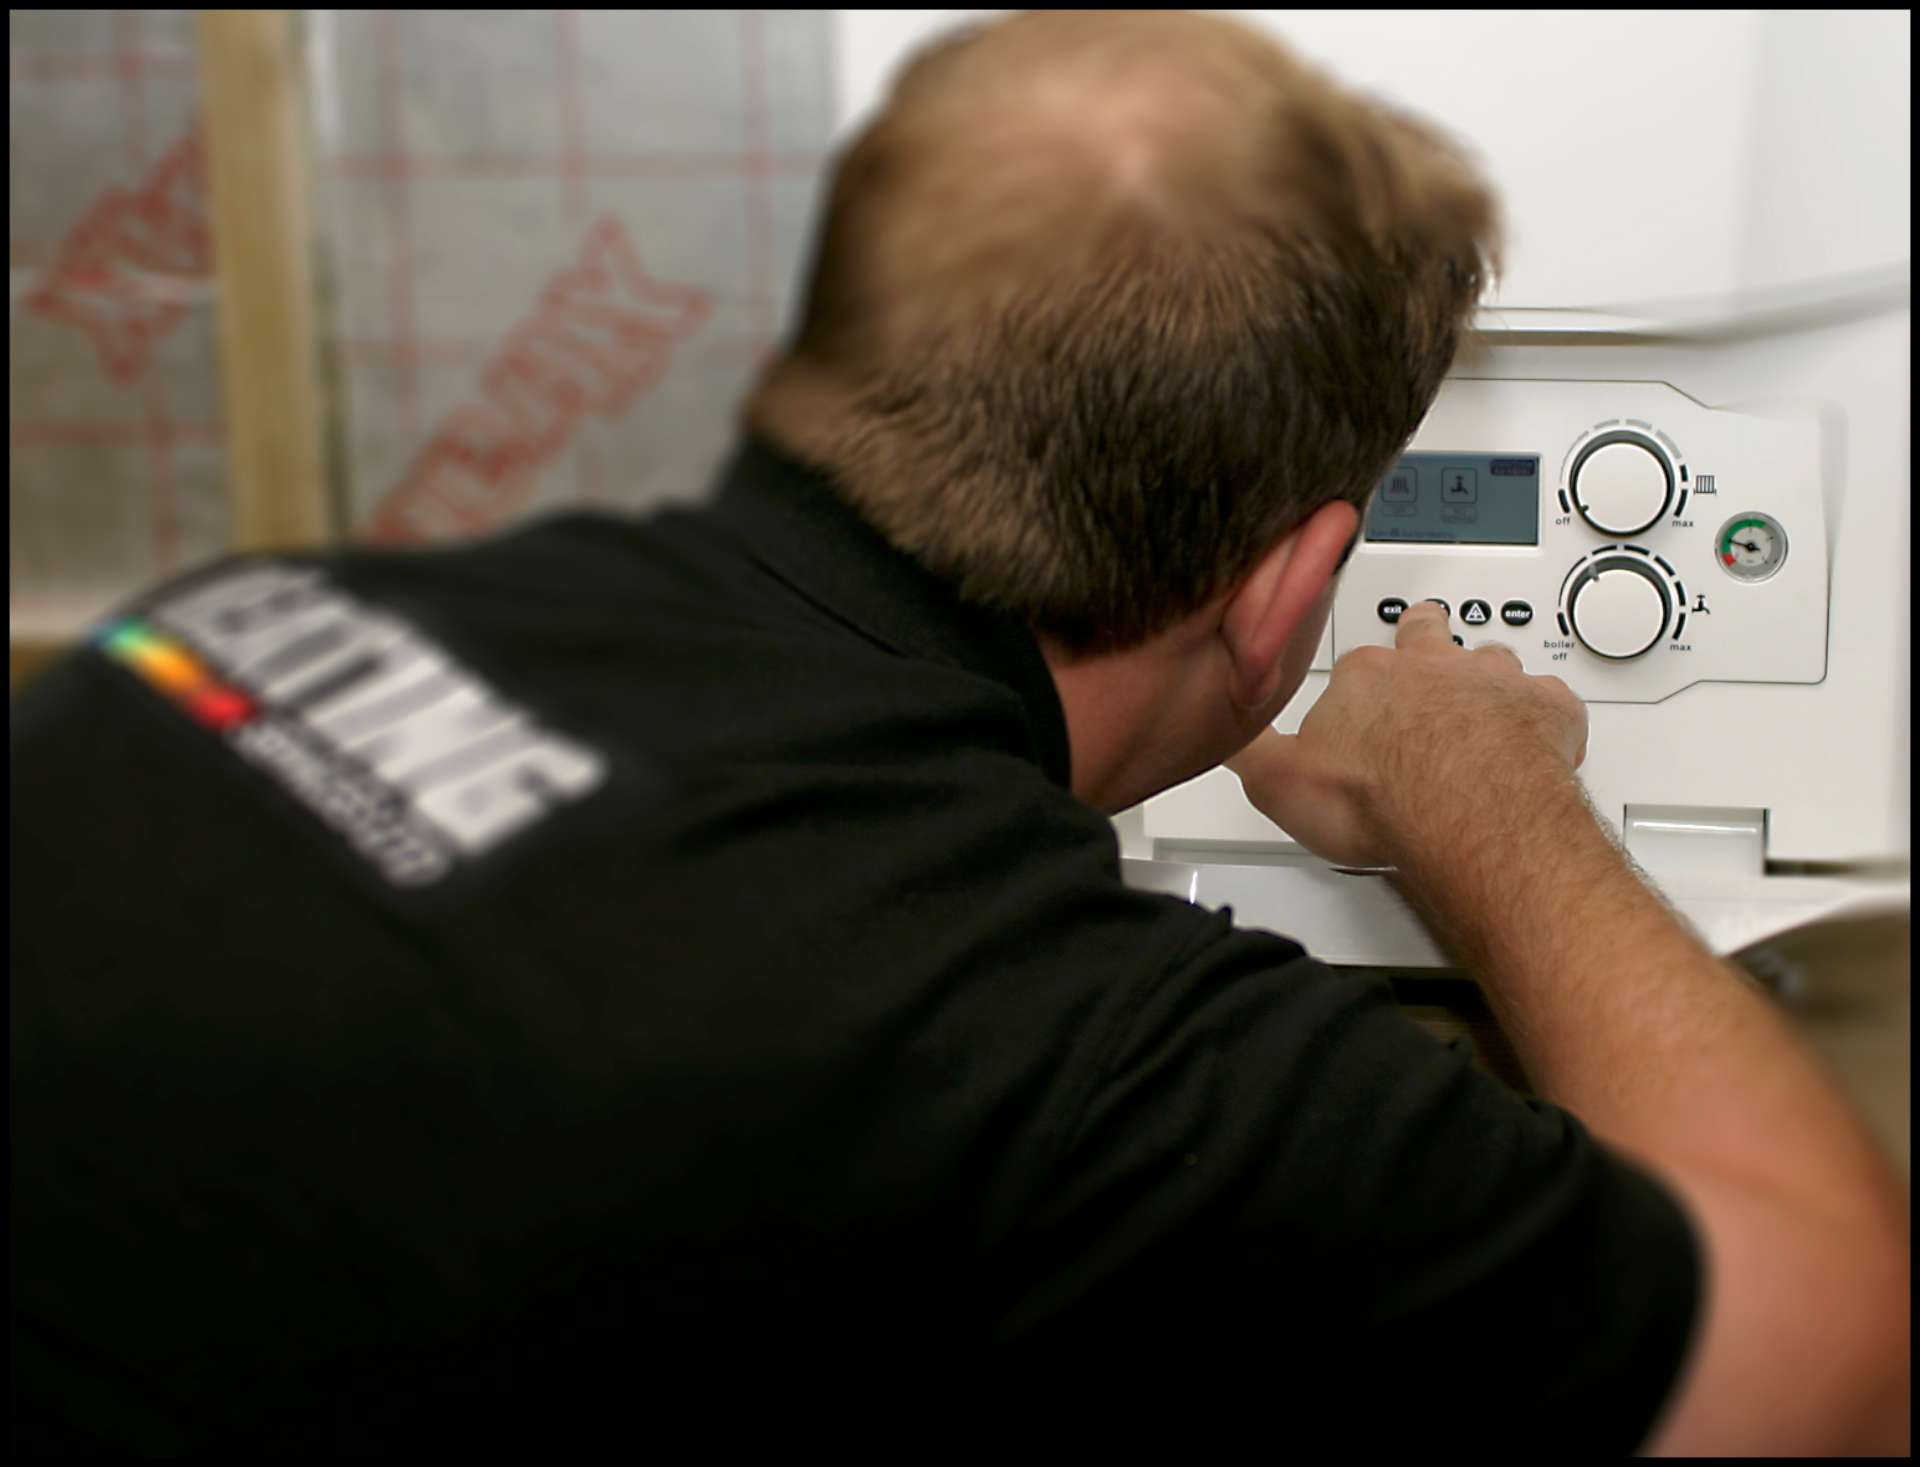 Plumbers Boiler Installation_ Service and Repairs and Bathroom Design and Installation by Heating Services Ltd in Bexley (5)